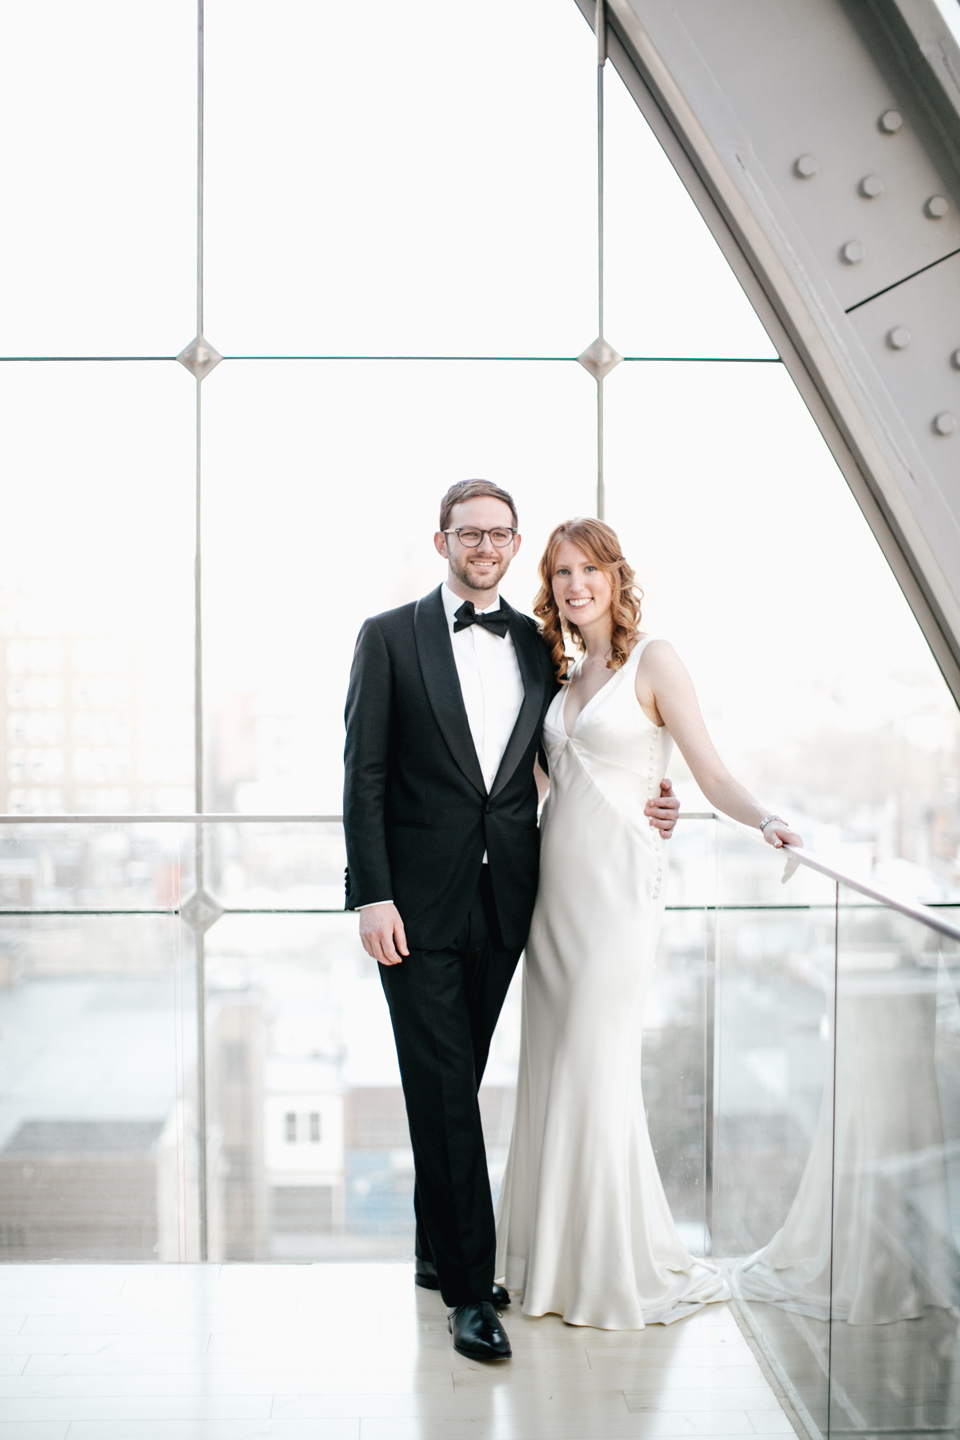 Ariel & Cassius | Wedding | Kimmel Center